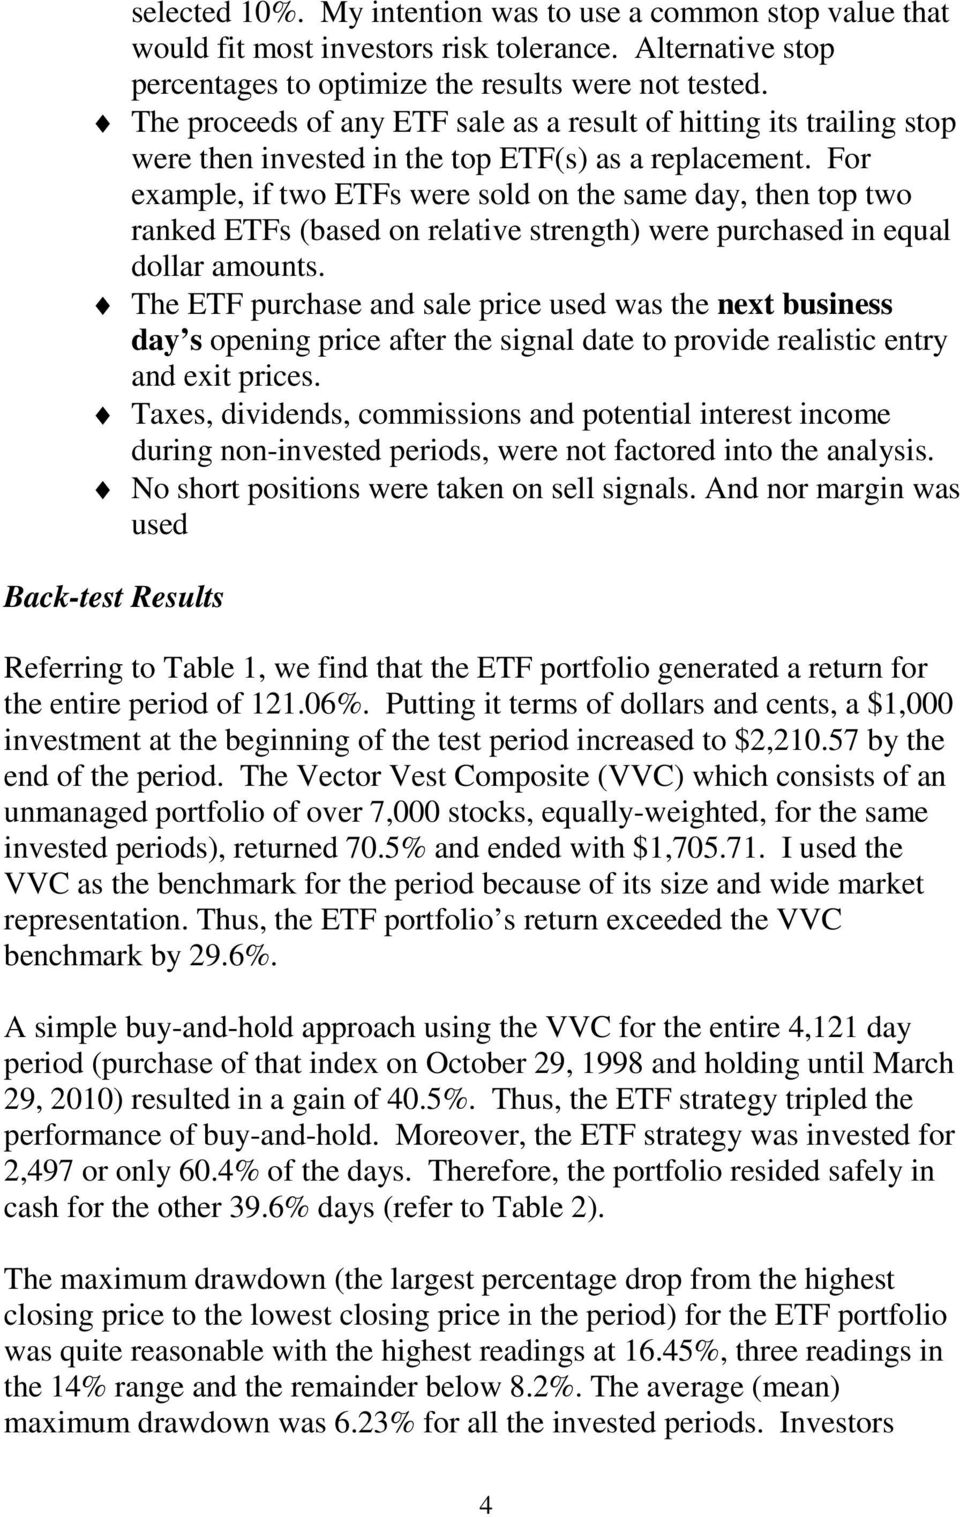 For example, if two ETFs were sold on the same day, then top two ranked ETFs (based on relative strength) were purchased in equal dollar amounts.